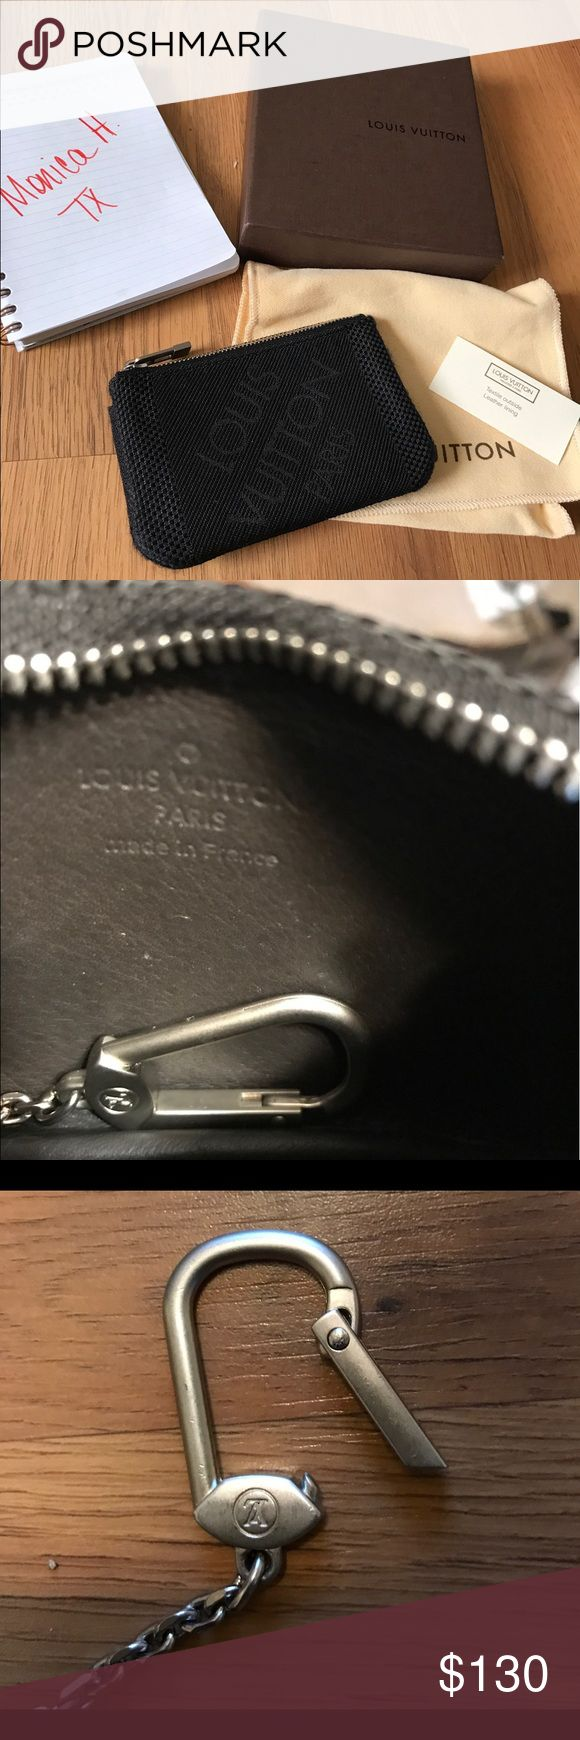 """Authentic Louis Vuitton coin purse Cles pouch Authentic Louis Vuitton Geant Damier Black Large Cles Key Pouch Purse - made in France - date code CT5100 (hard to read) - approx 5""""L x 3.5""""H x 1""""W Louis Vuitton Accessories Key & Card Holders"""